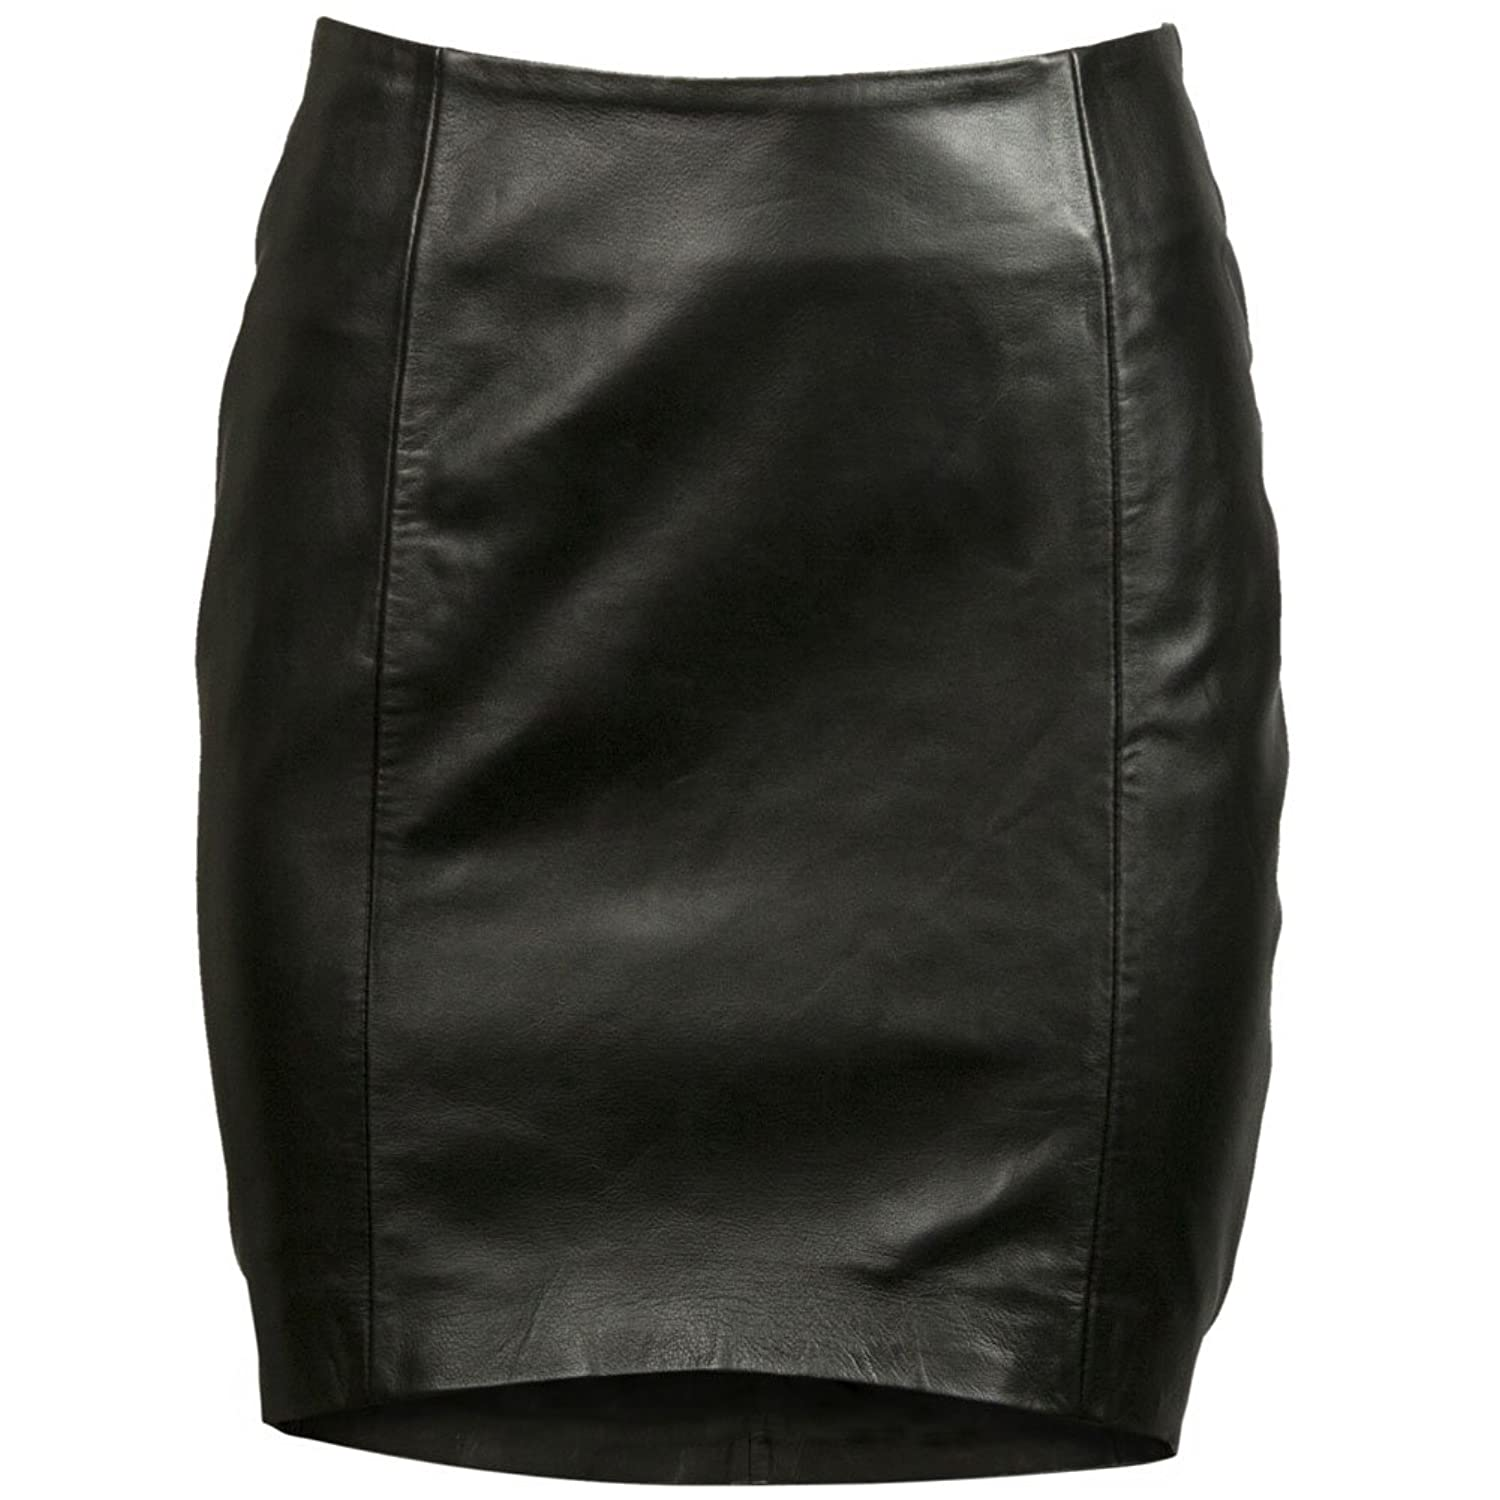 VIPARO Black Front Tilted Short Lambskin Leather Skirt - Ruby цена